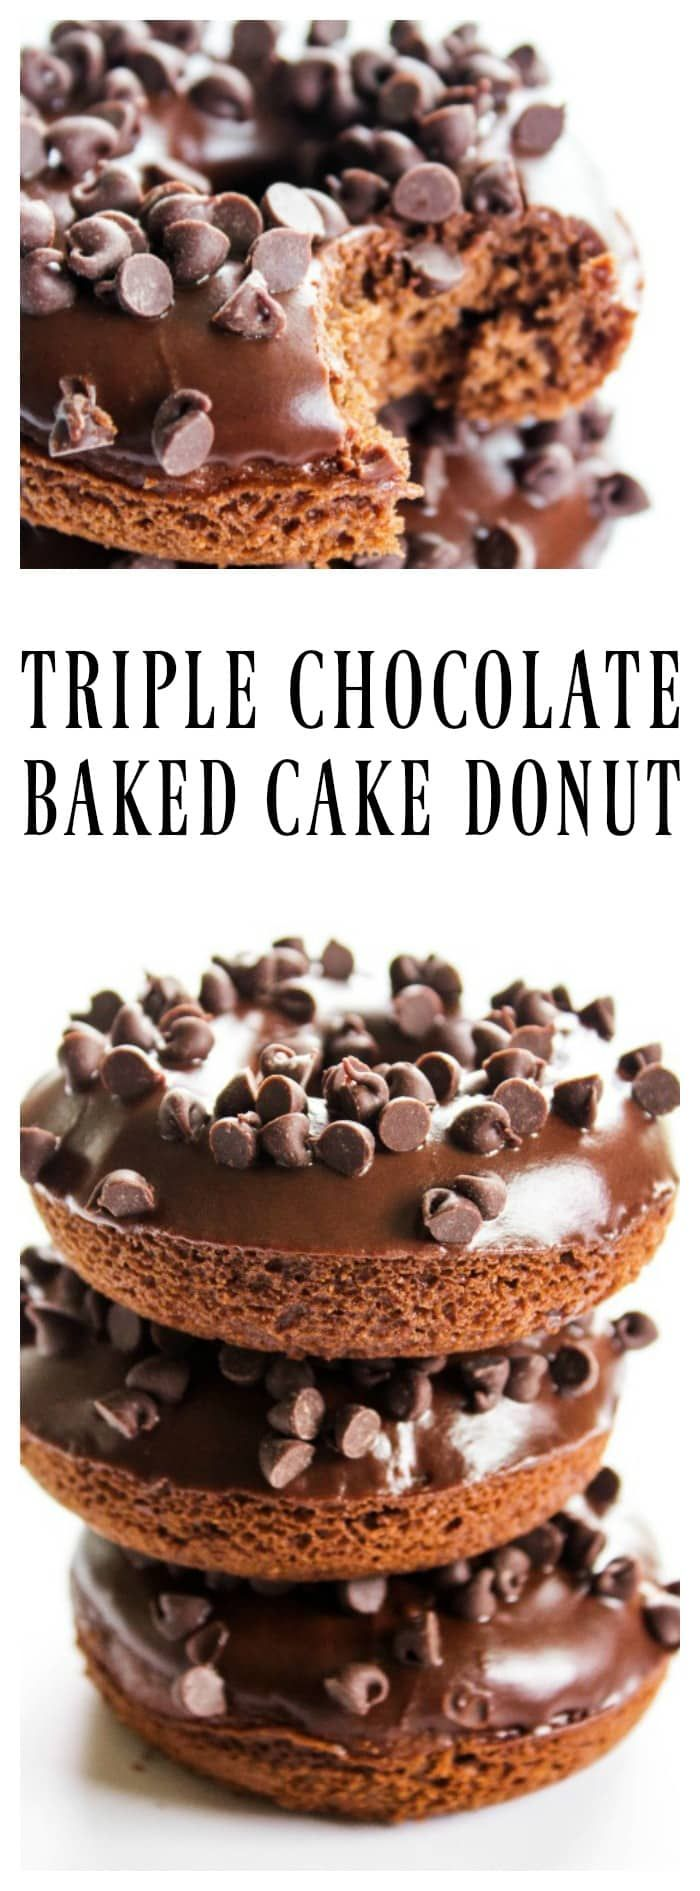 TRIPLE CHOCOLATE BAKED CAKE DONUT RECIPE | A Dash of Sanity